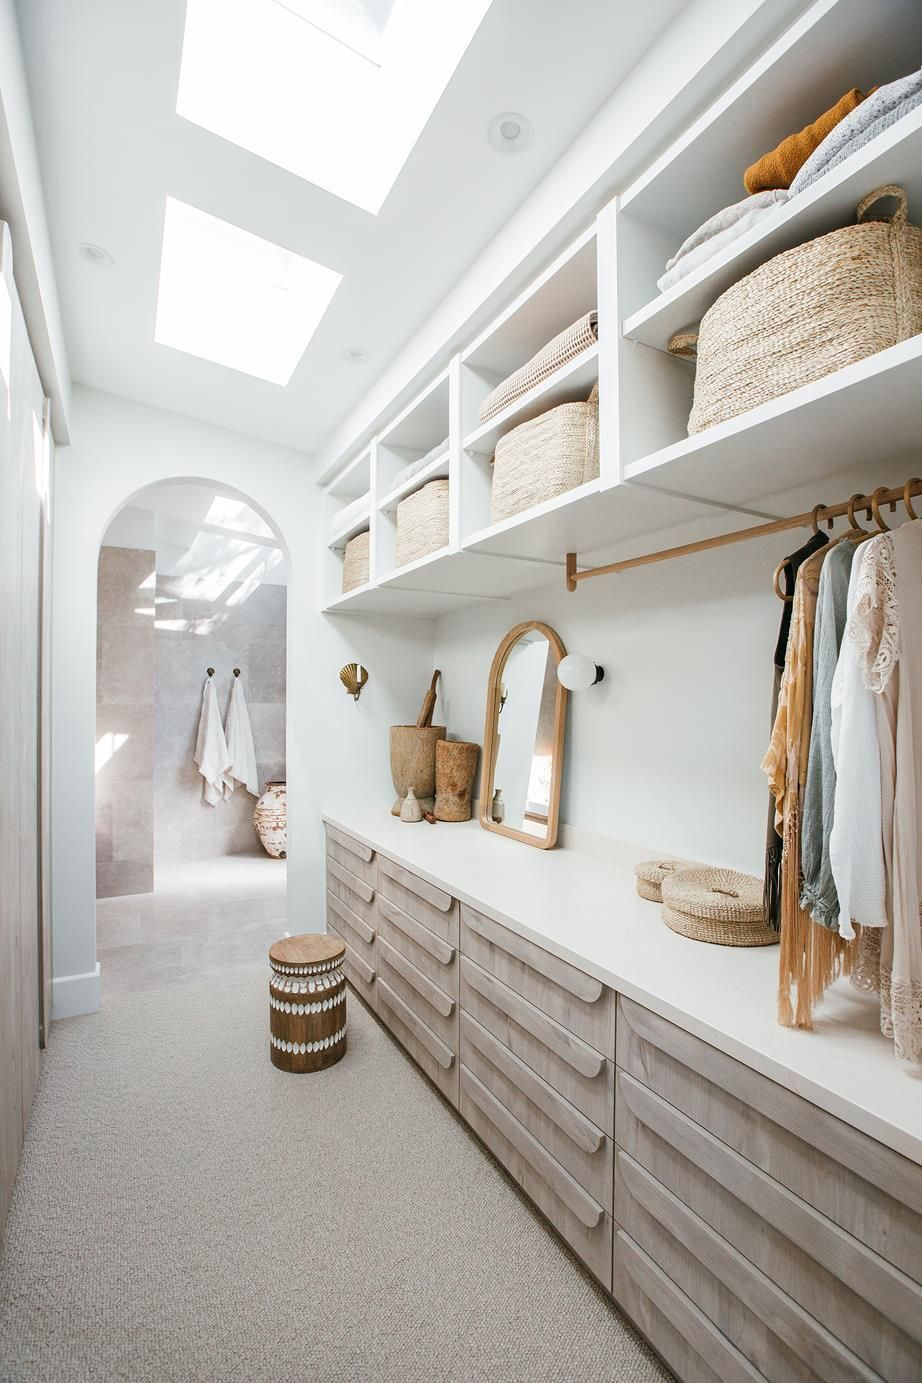 How to design a walk-in wardrobe